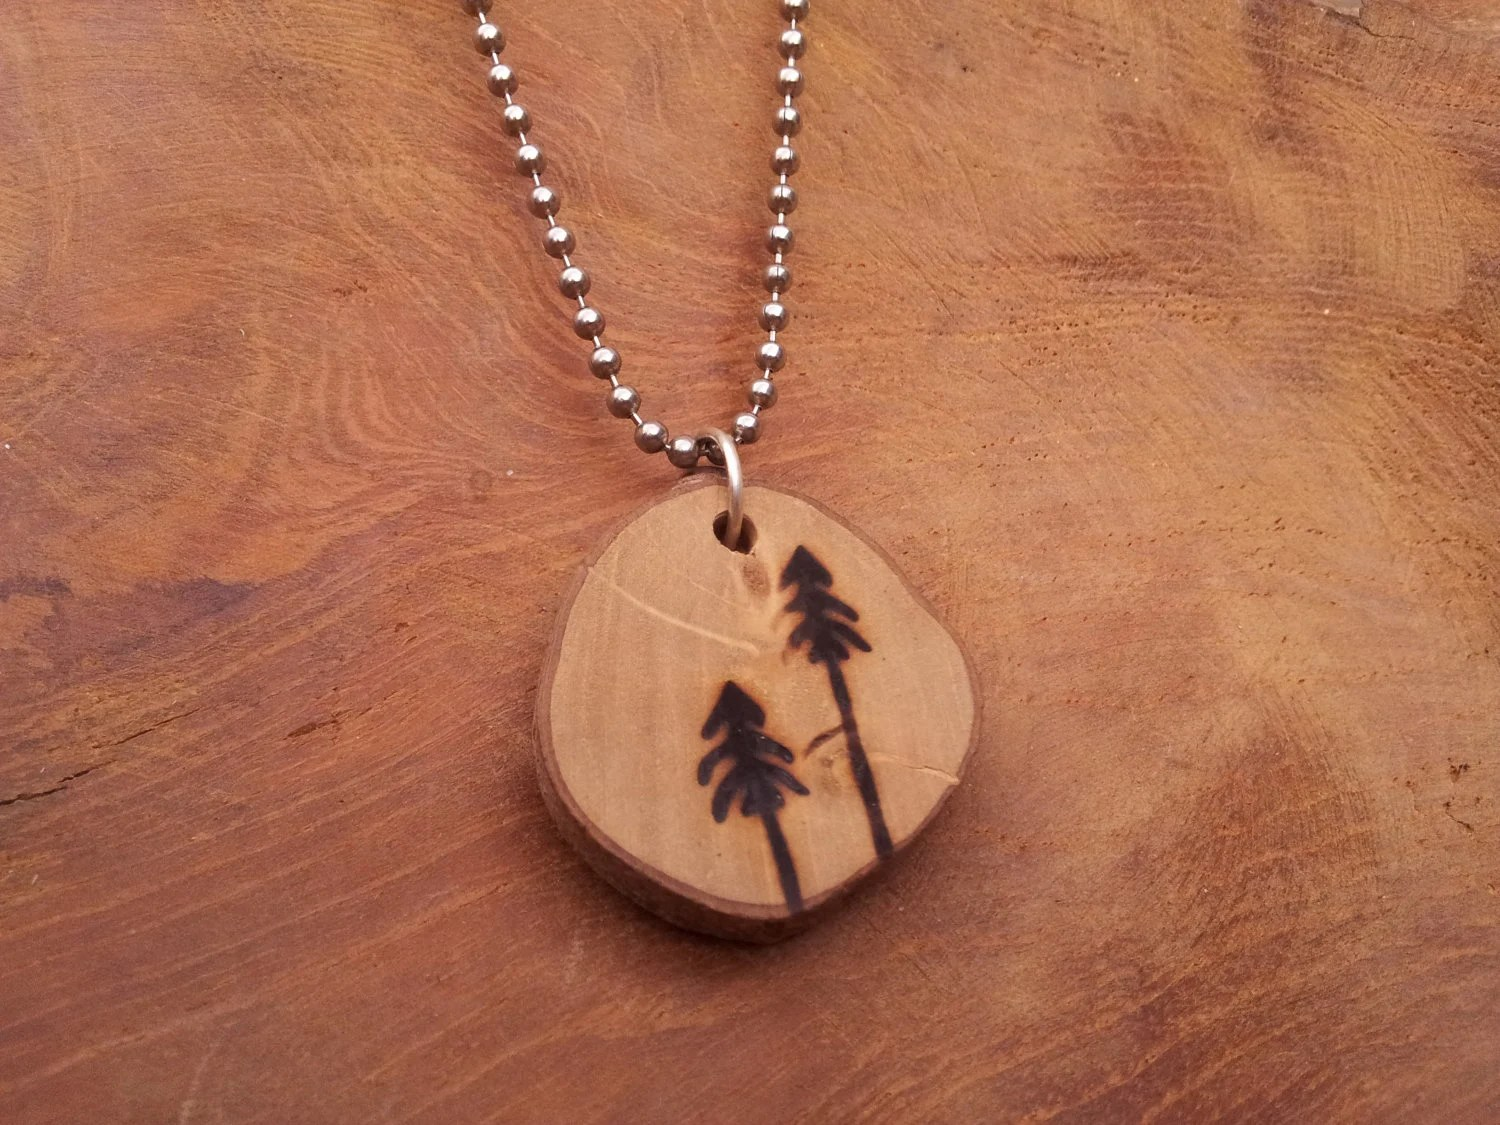 Pine trees - Autumn inspired wood burned pendant - GoudsmederijHerfst